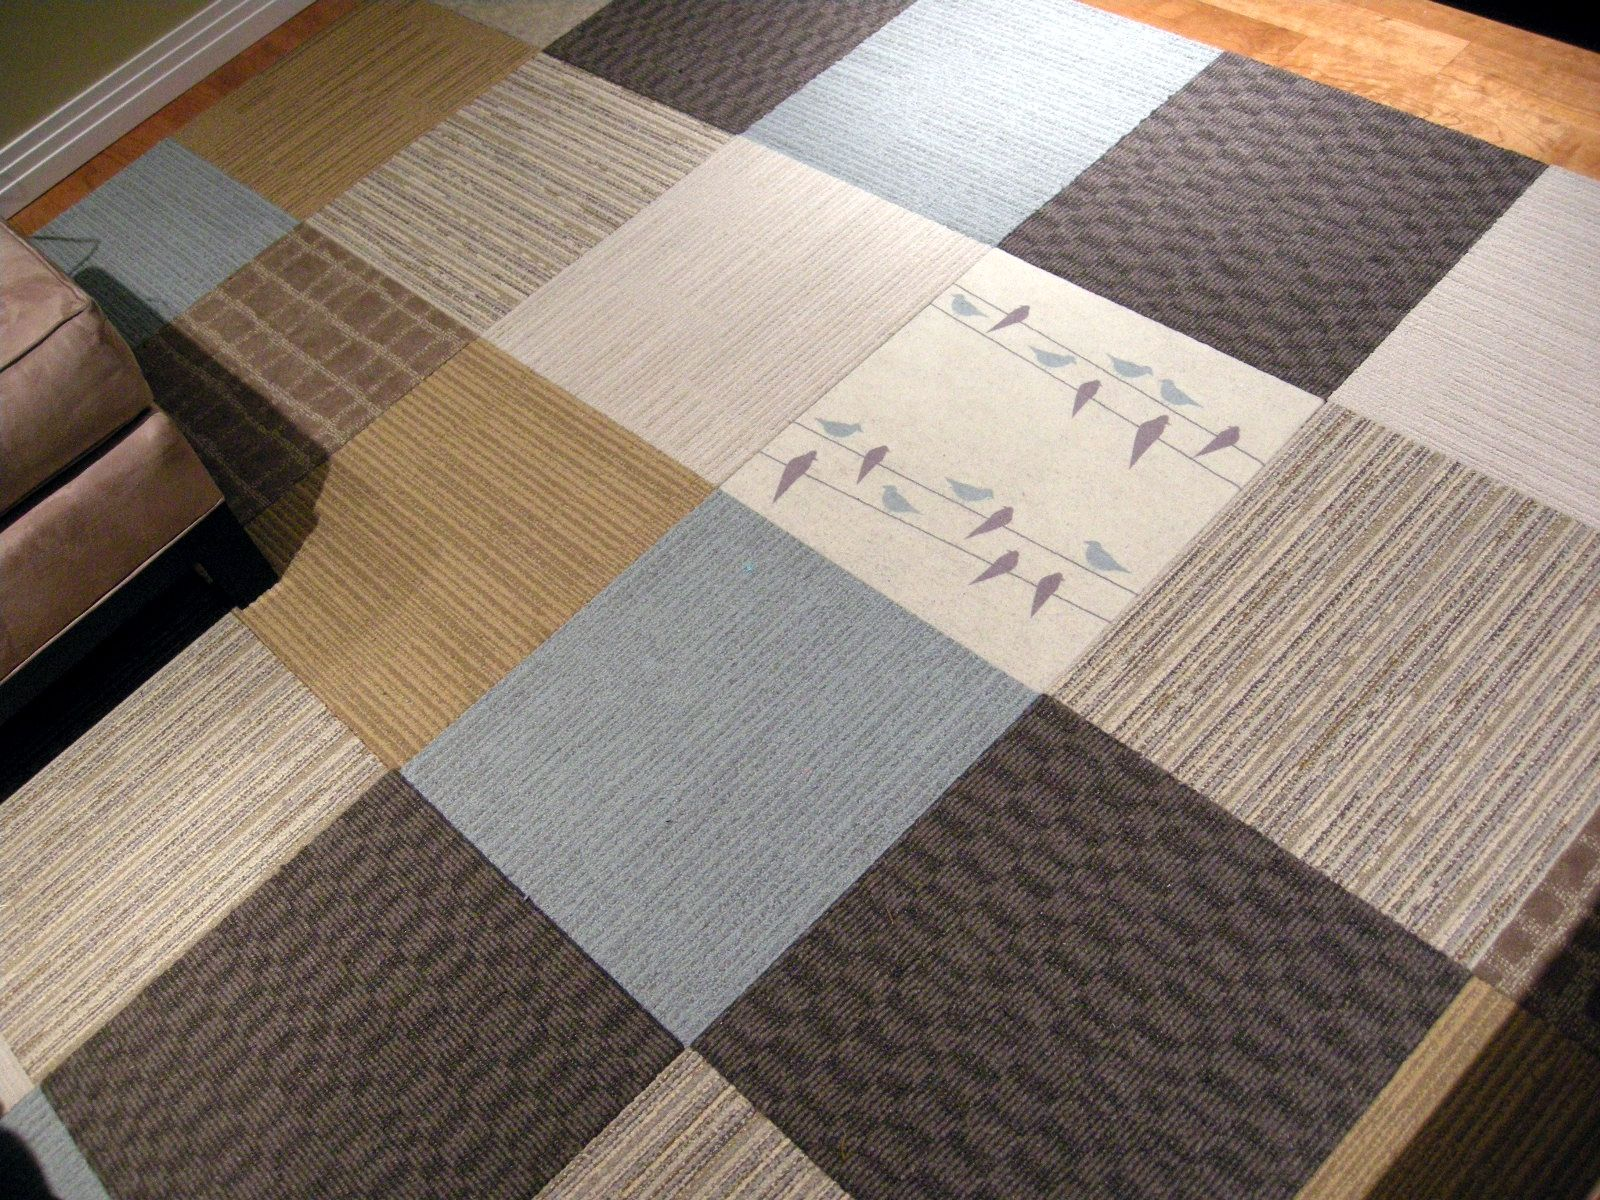 Interior comfortable carpet tile ideas with grey square pattern interior comfortable carpet tile ideas with grey square pattern screen printing also maple wood tile dailygadgetfo Image collections